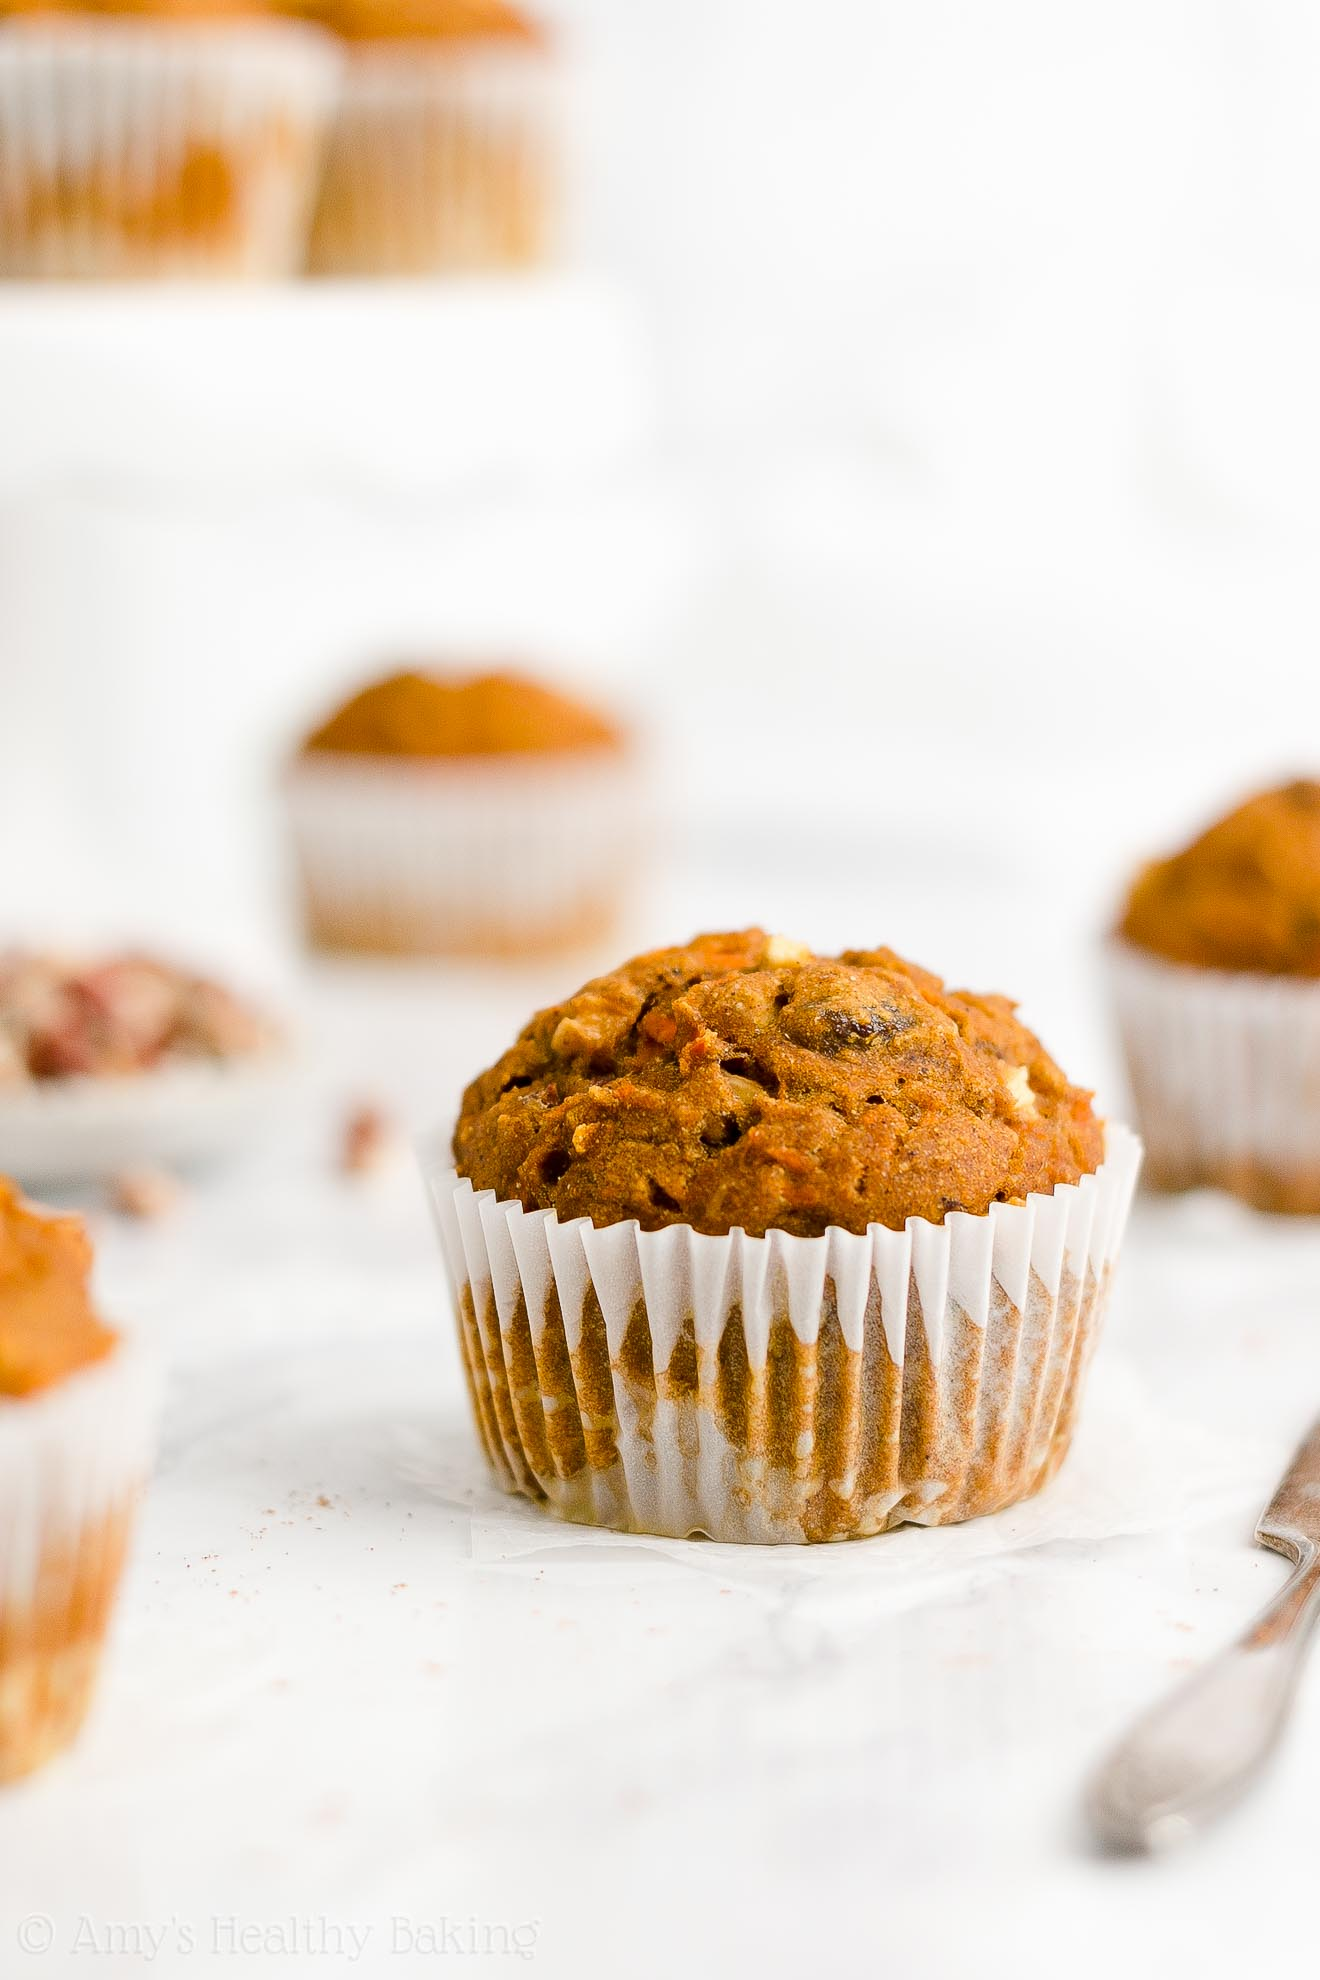 Best Easy Healthy Clean Eating Sugar Free Pumpkin Spice Morning Glory Muffins